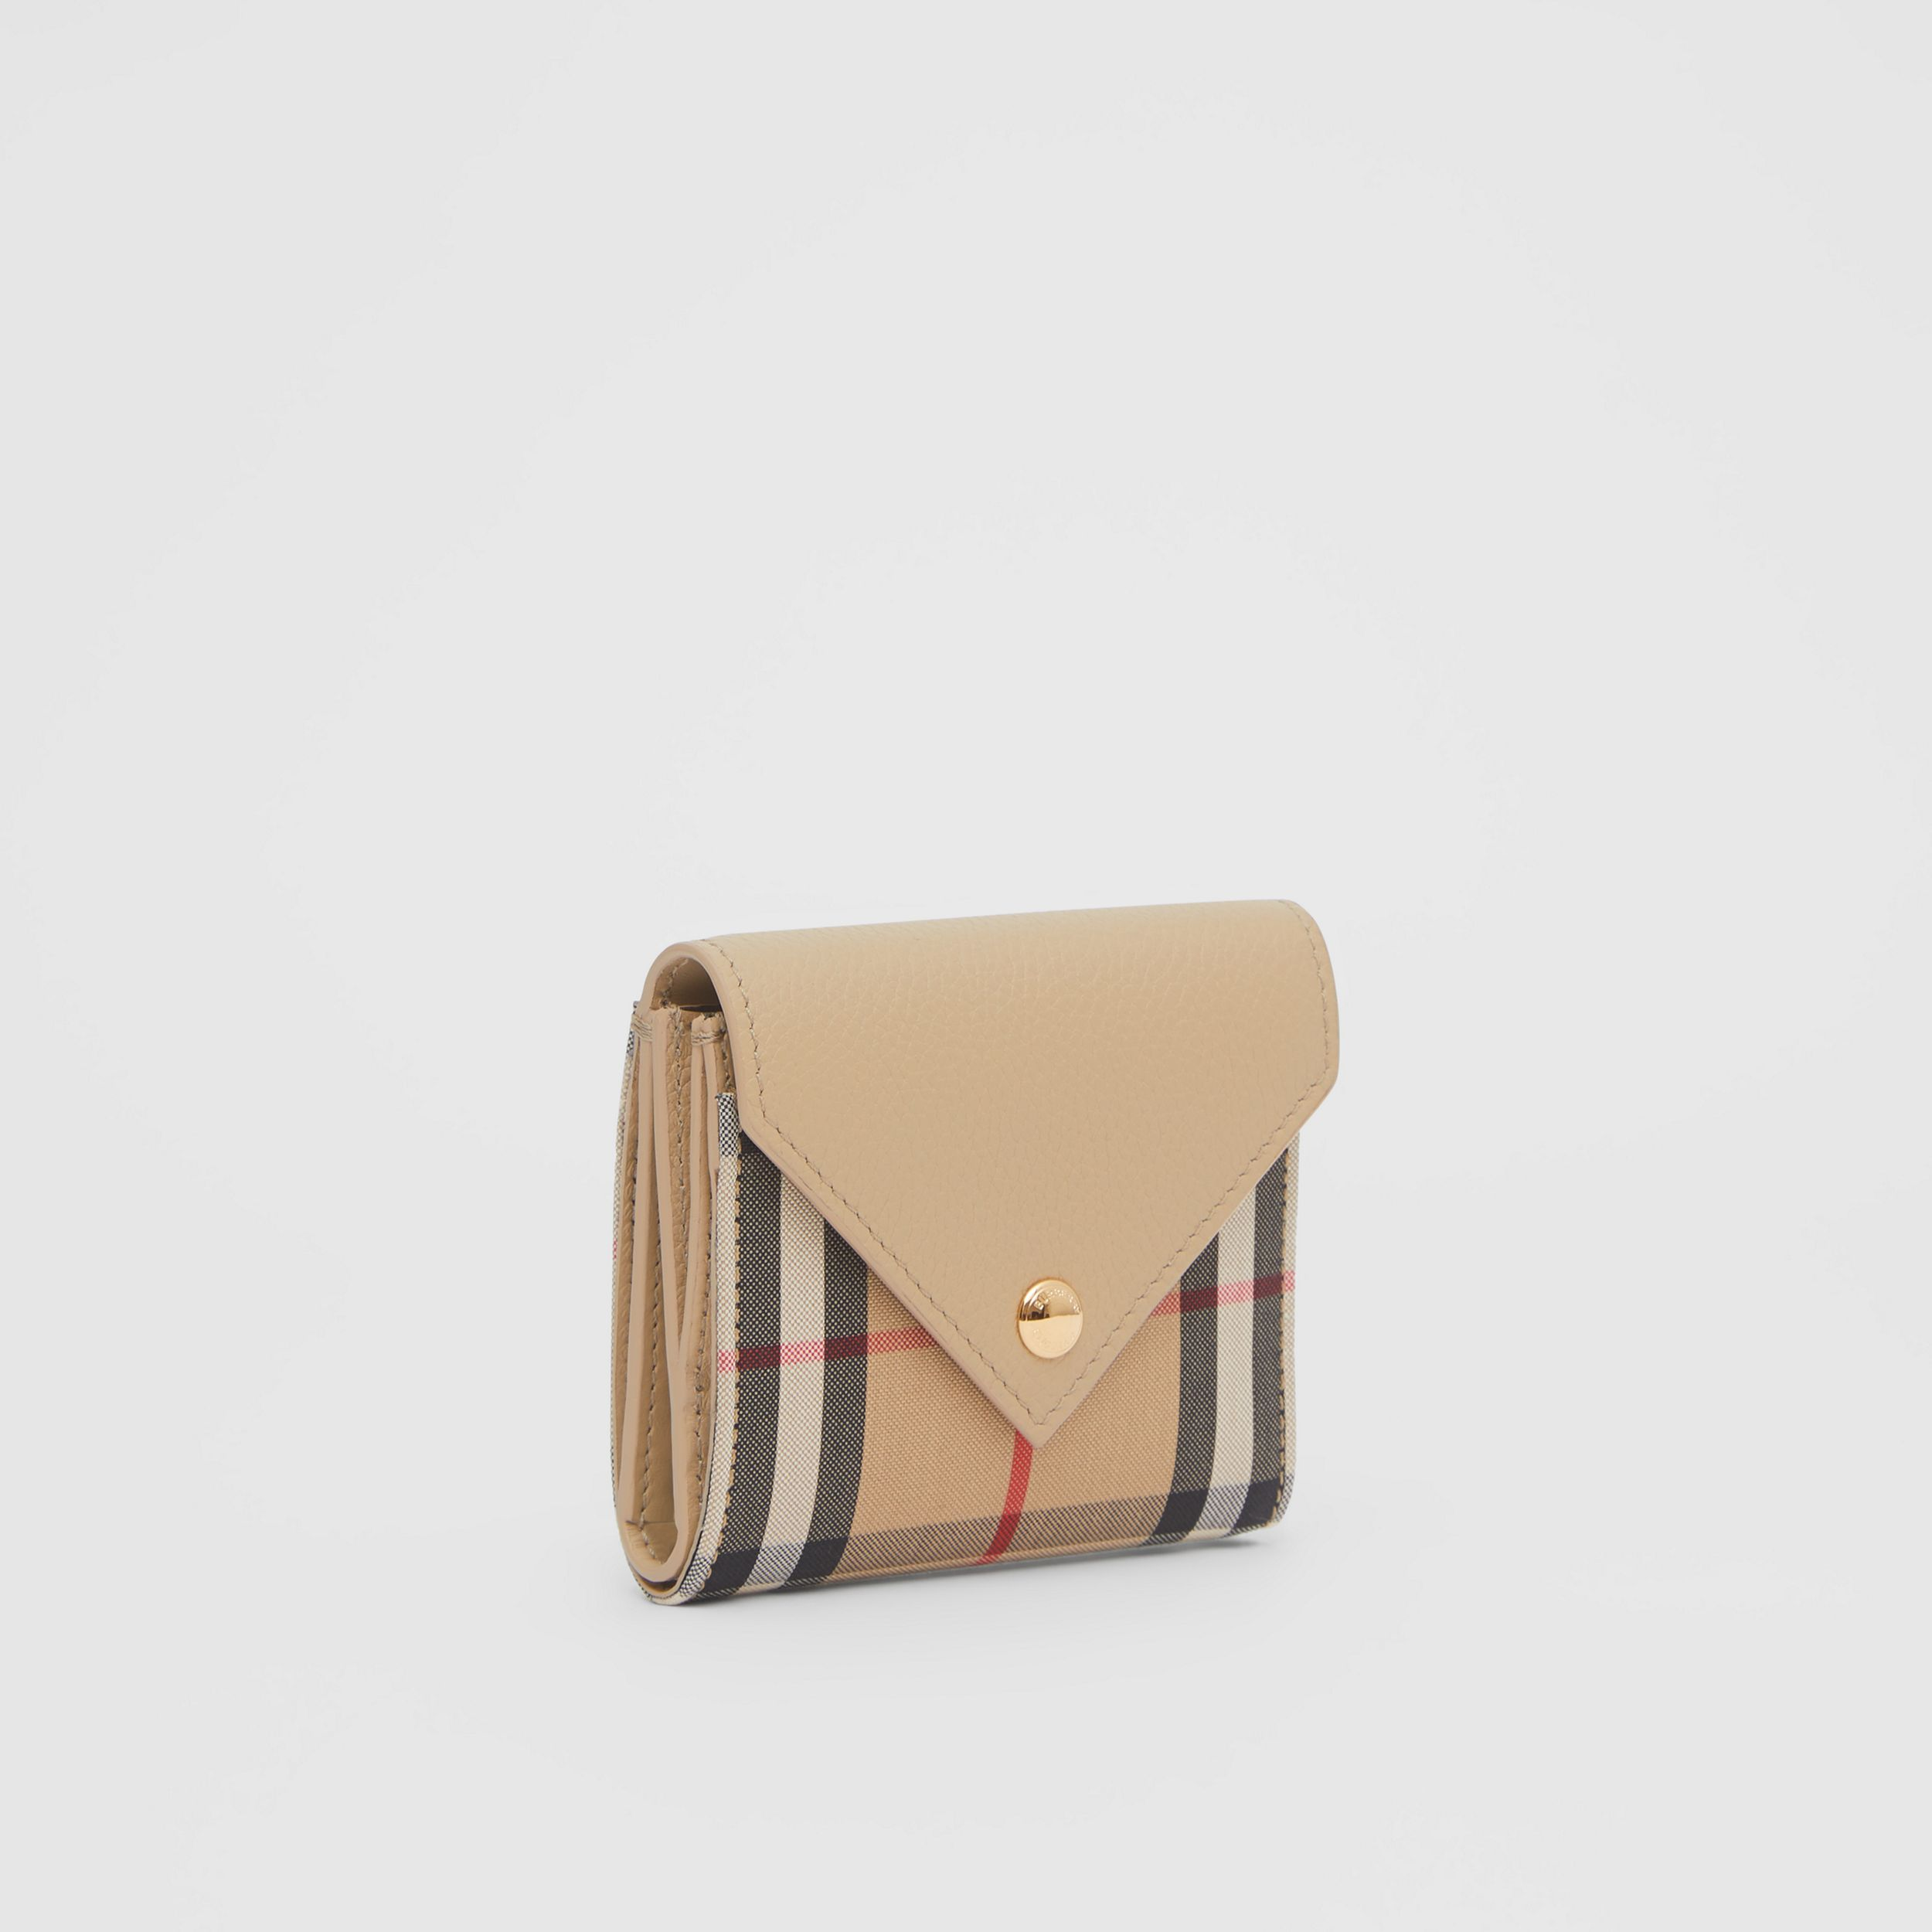 Vintage Check and Grainy Leather Folding Wallet in Light Beige - Women | Burberry Canada - 4